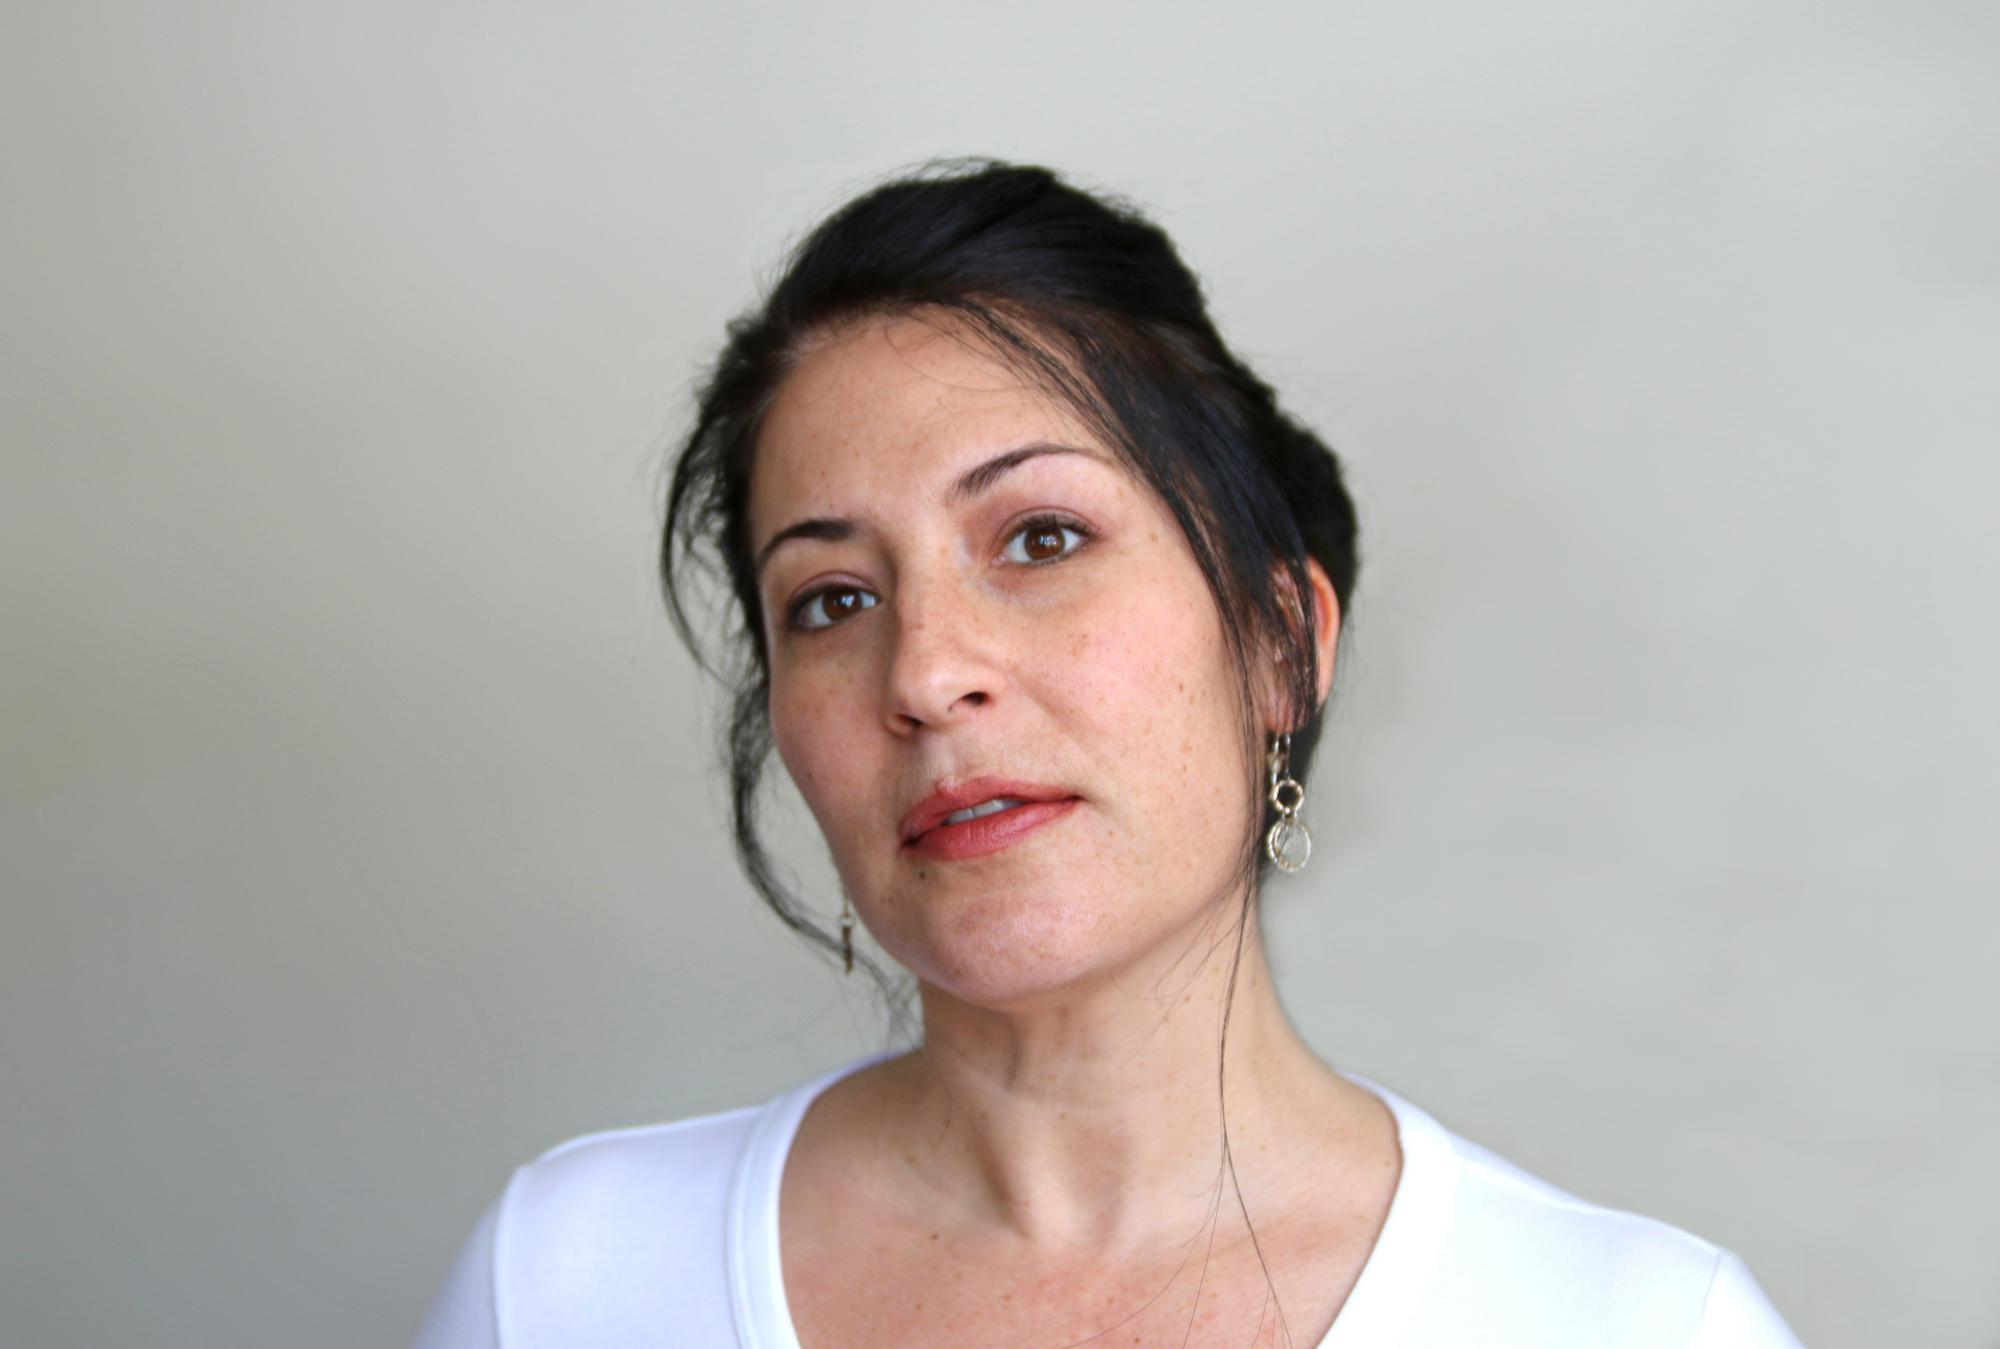 Poet Ada Limón will give a poetry reading along with Matthew Zapruder on September 11, 2019 at St. Mary's College of California.